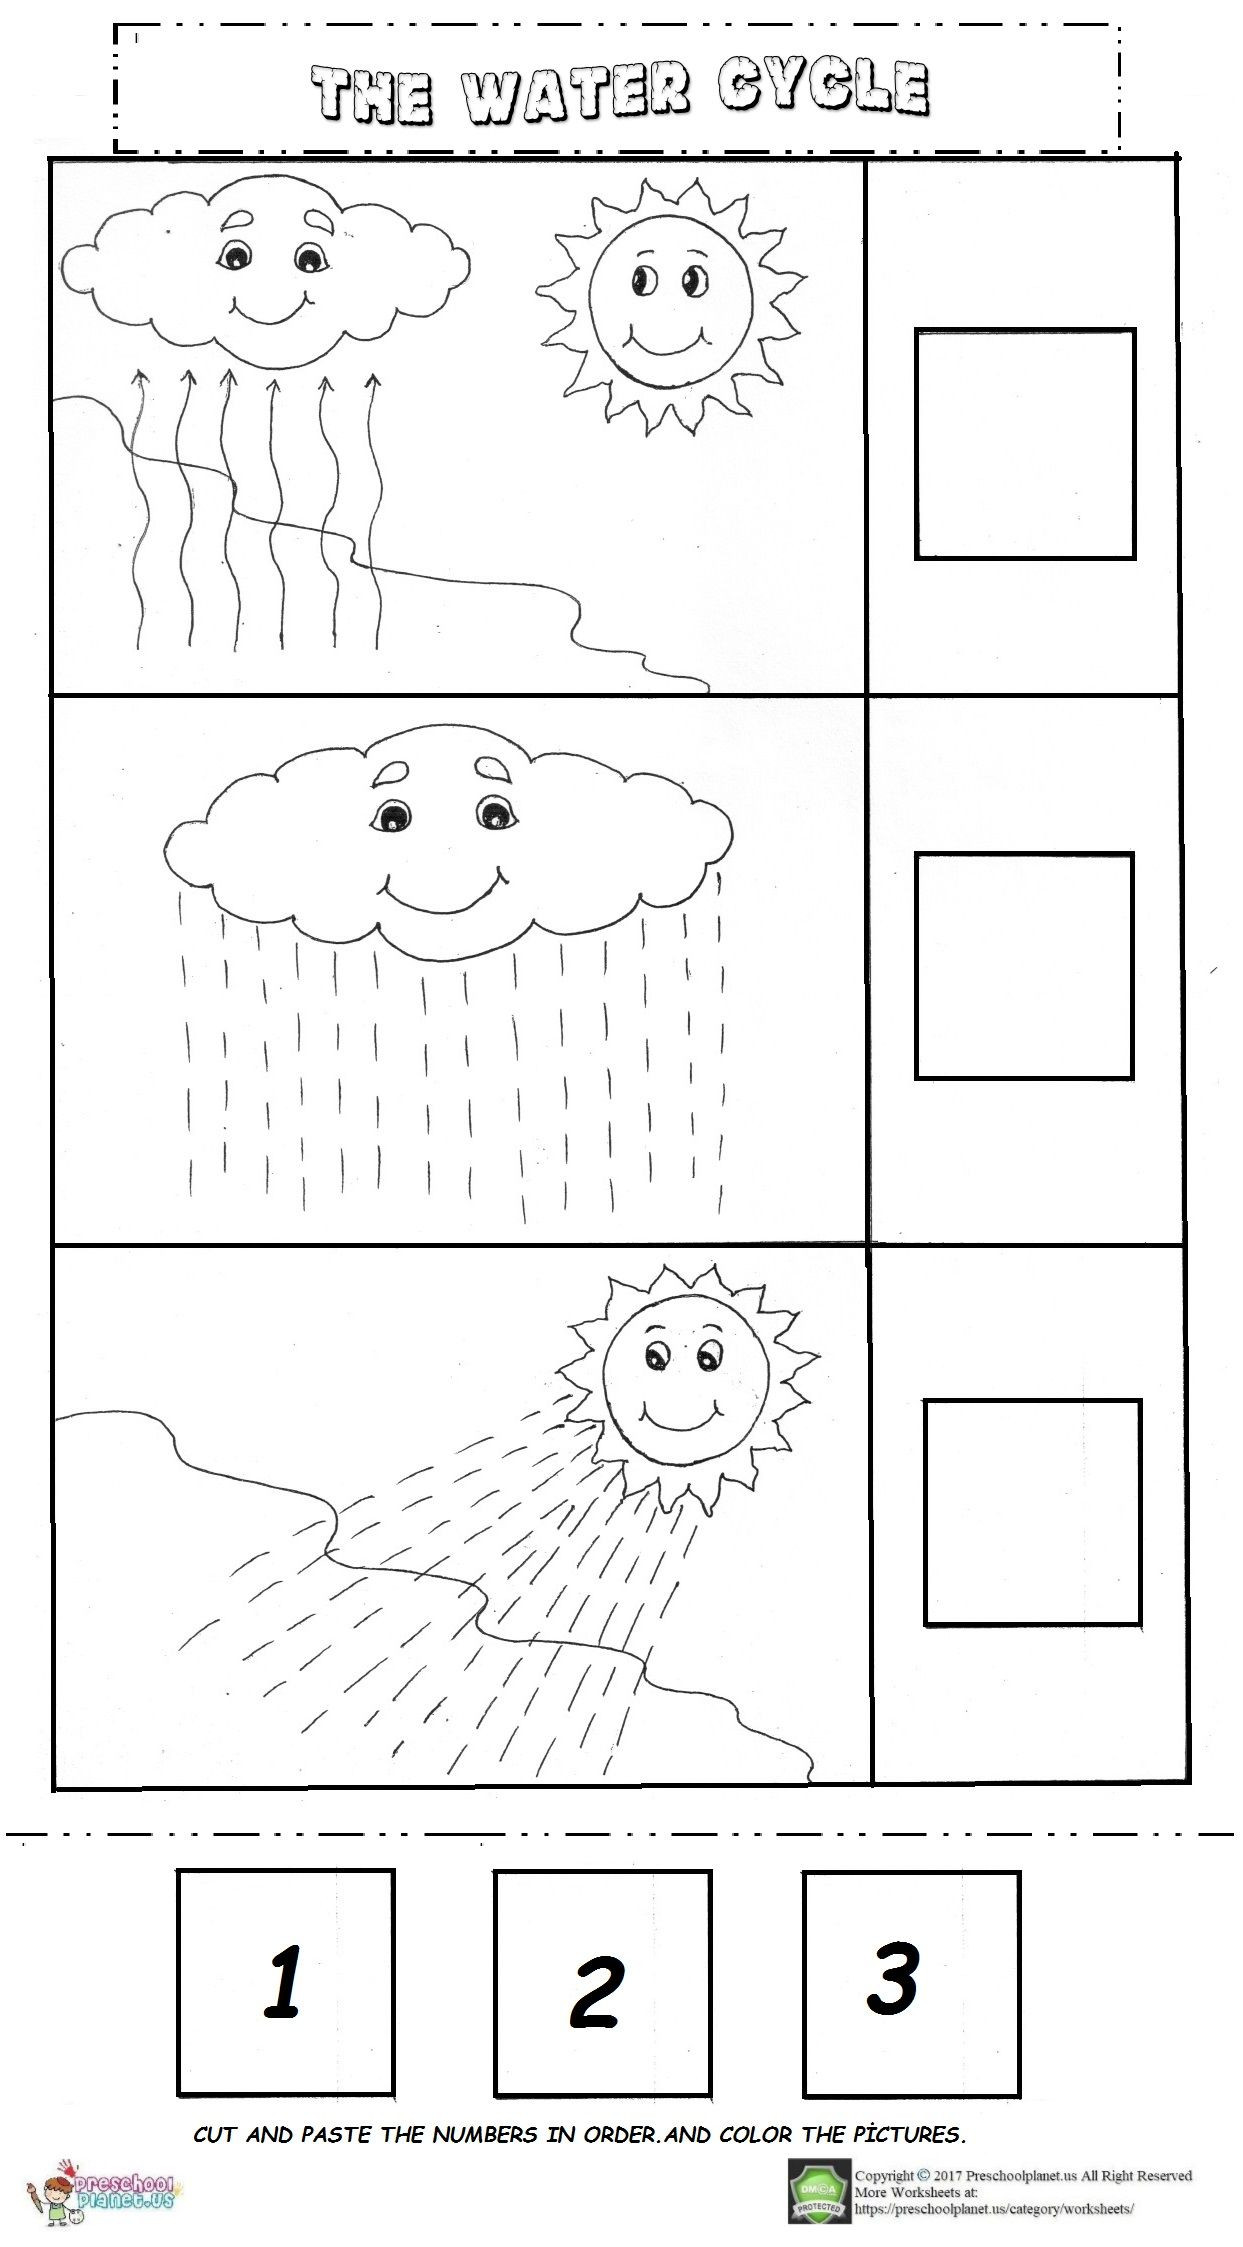 Water Cycle Worksheet Kindergarten the Water Cycle Worksheet